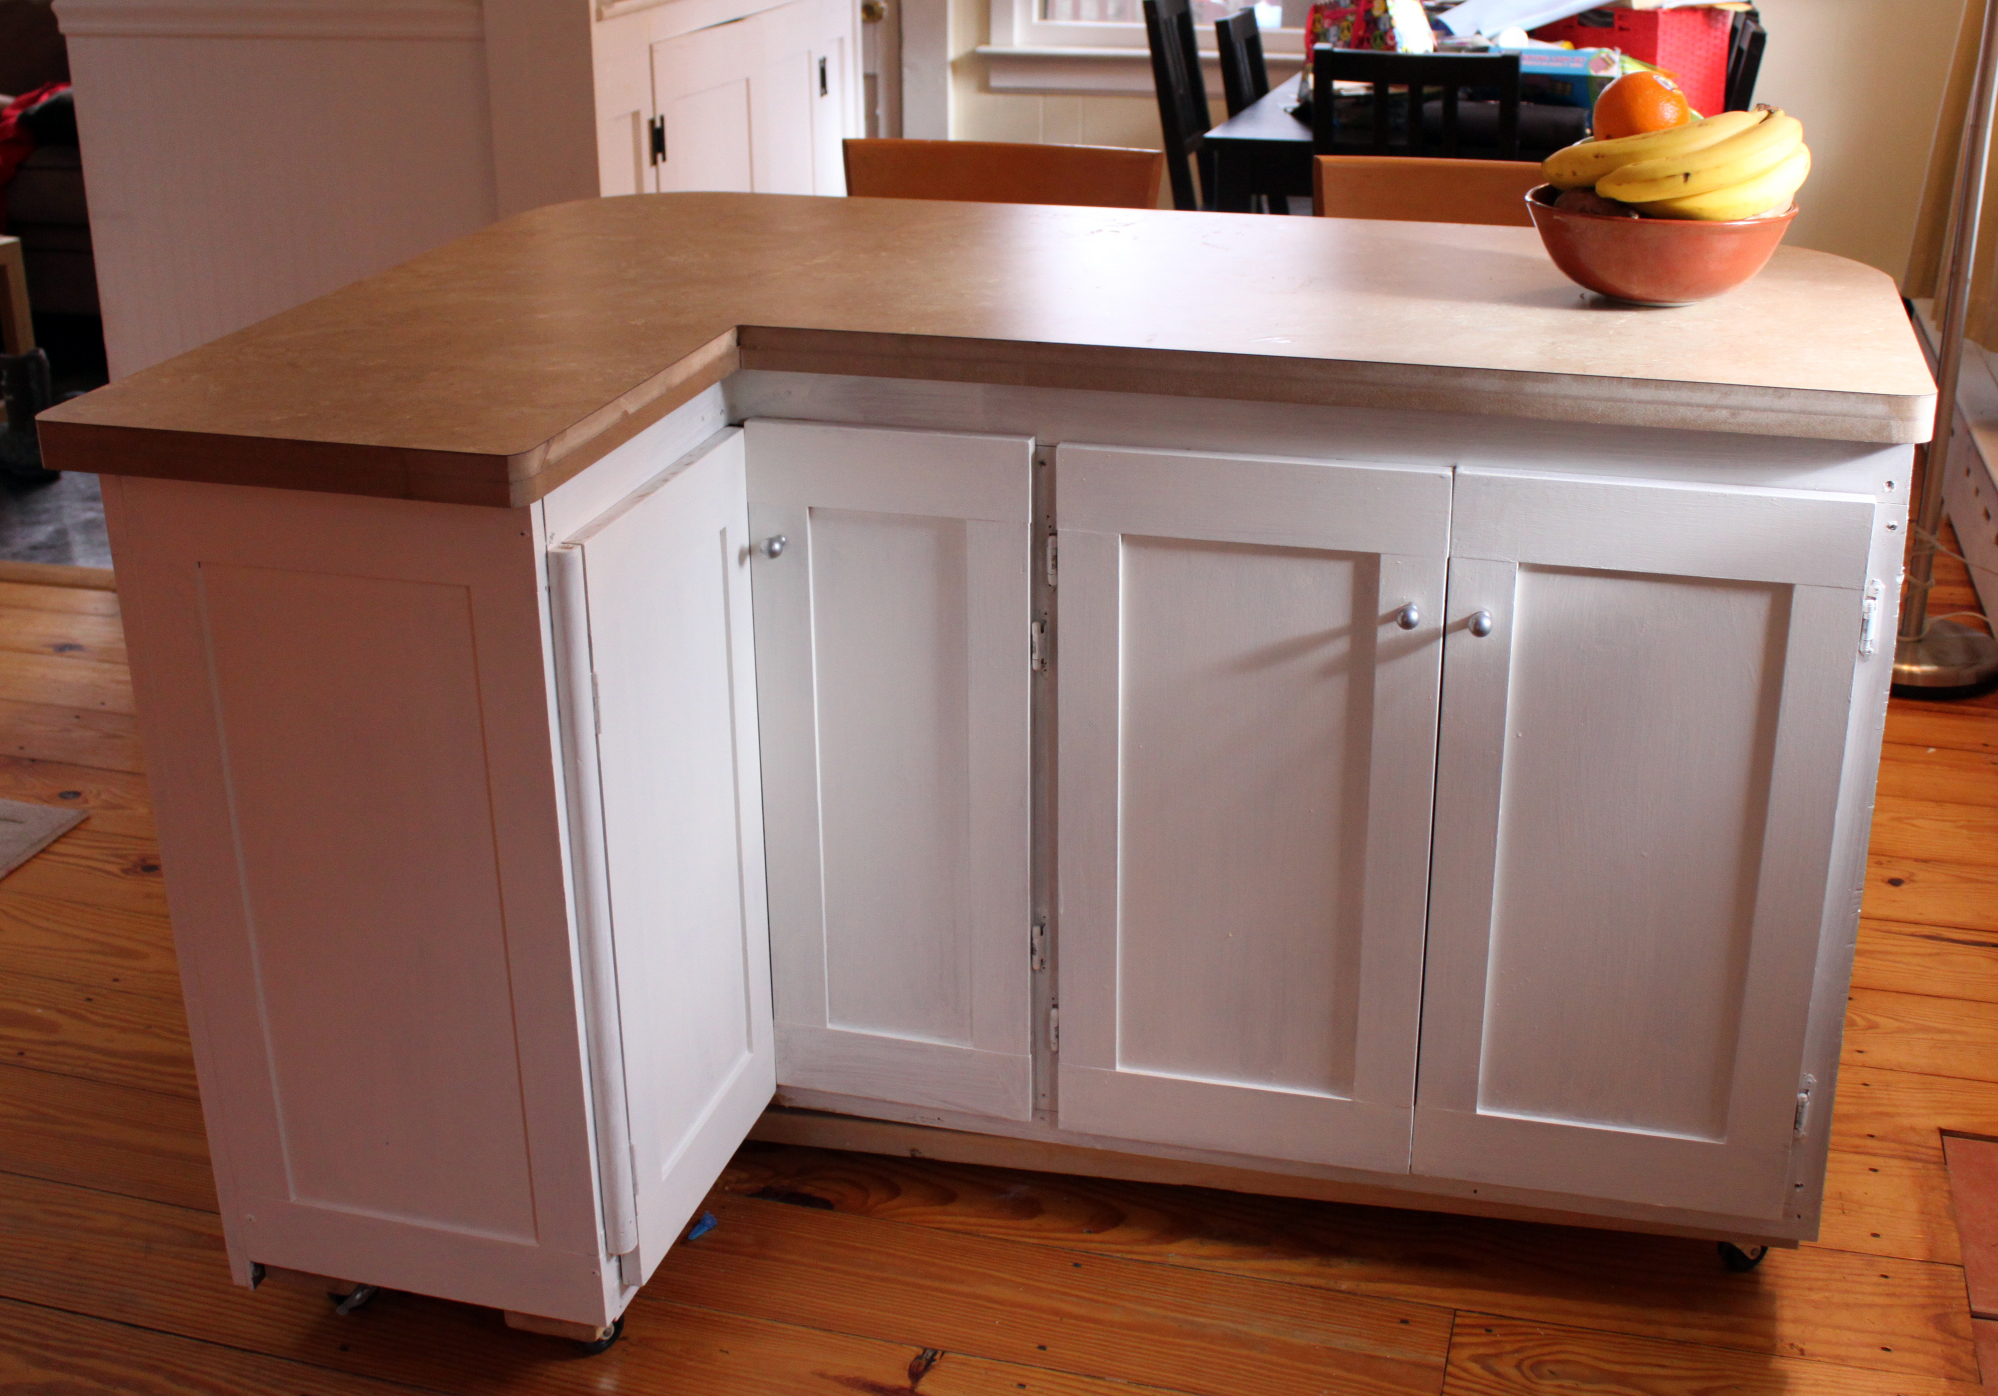 weeknd project low budget kitchen renovation budget kitchen remodel 3 Rolling Kitchen